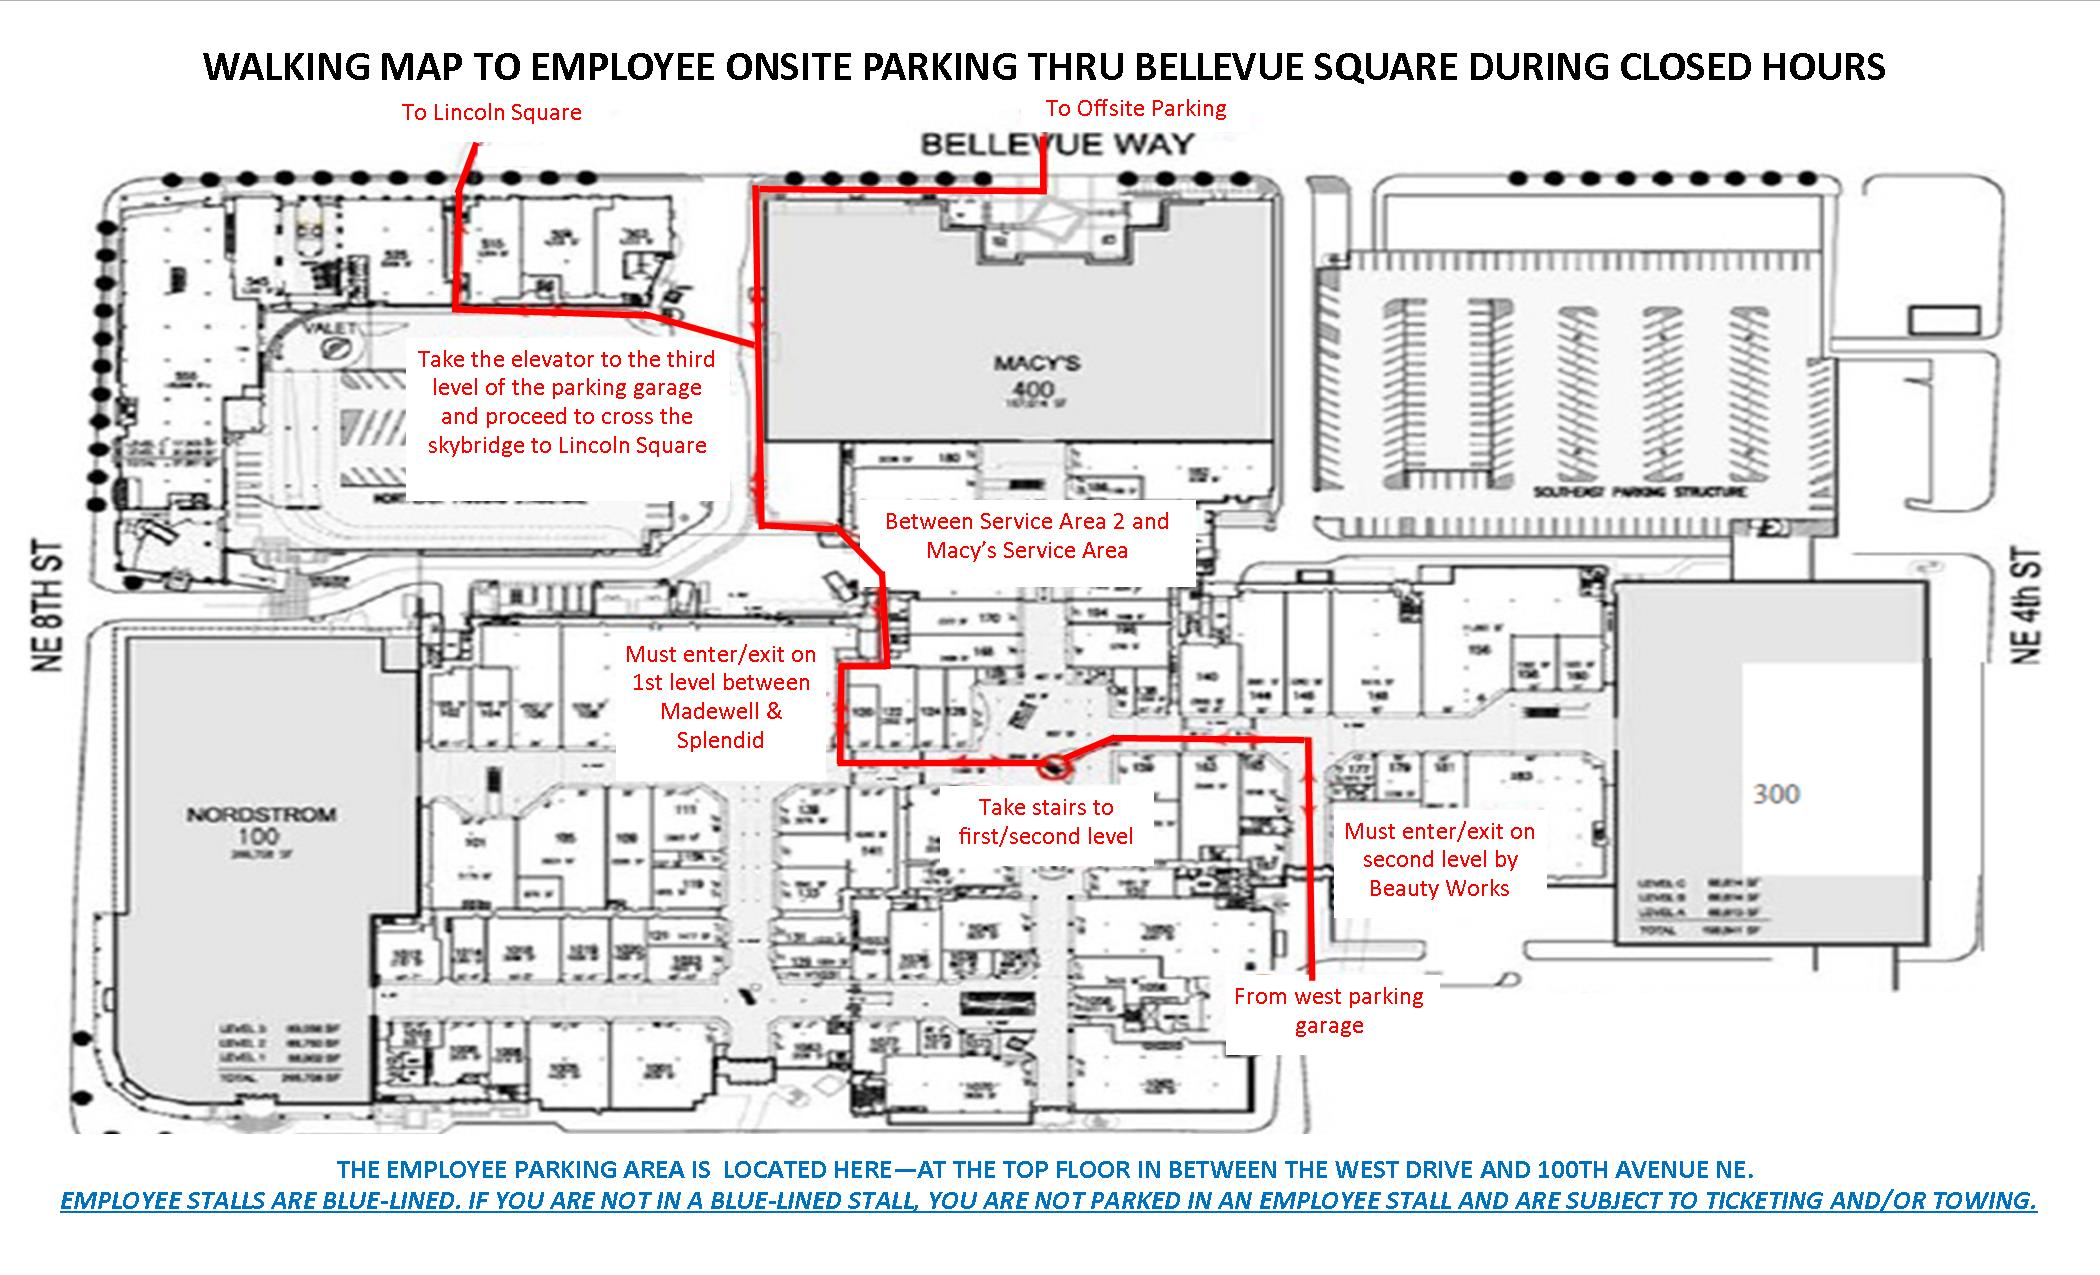 bellevue square mall map with Collection Employees on Hartford Connecticut likewise Map Canada blogspot moreover Larwin Plaza Shopping Center also 5607391383 likewise The Latest Name Interested In Emi Ron Perelman.